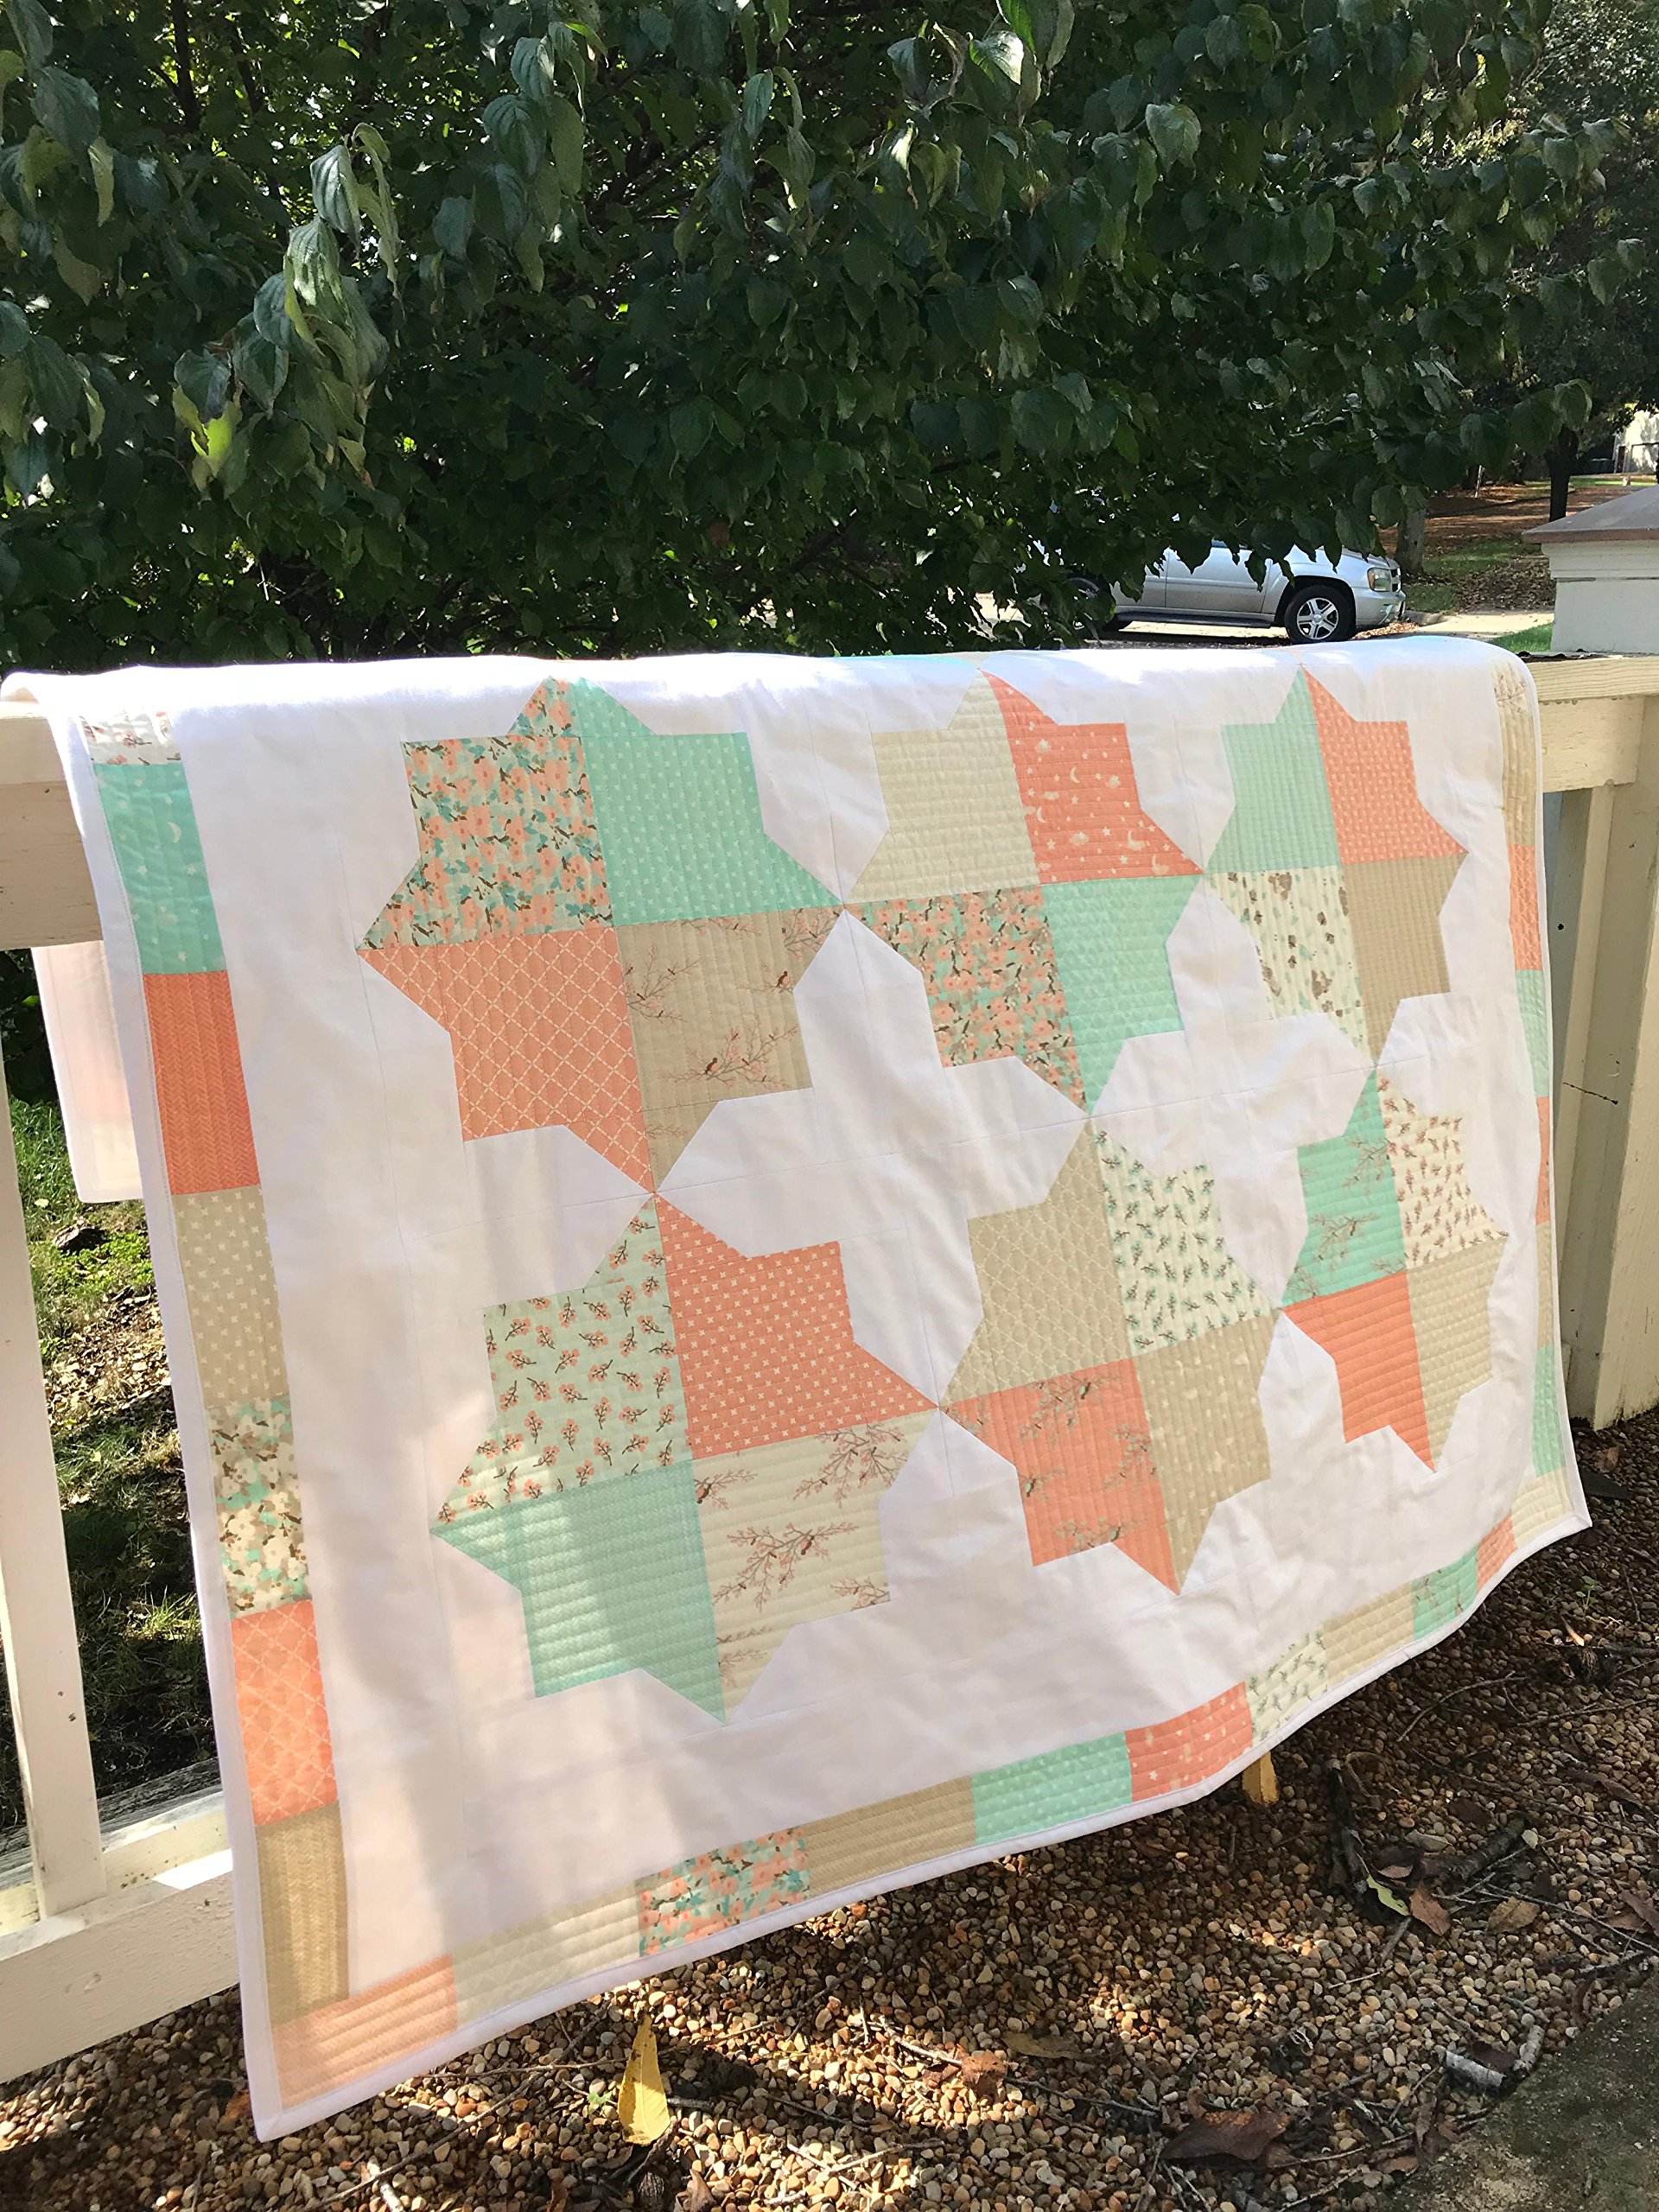 Modern Baby Quilt - Baby Quilt - Toddler Bedding - Homemade Baby Quilt - Baby Blanket - Heirloom Baby Quilt - Woodland Quilt